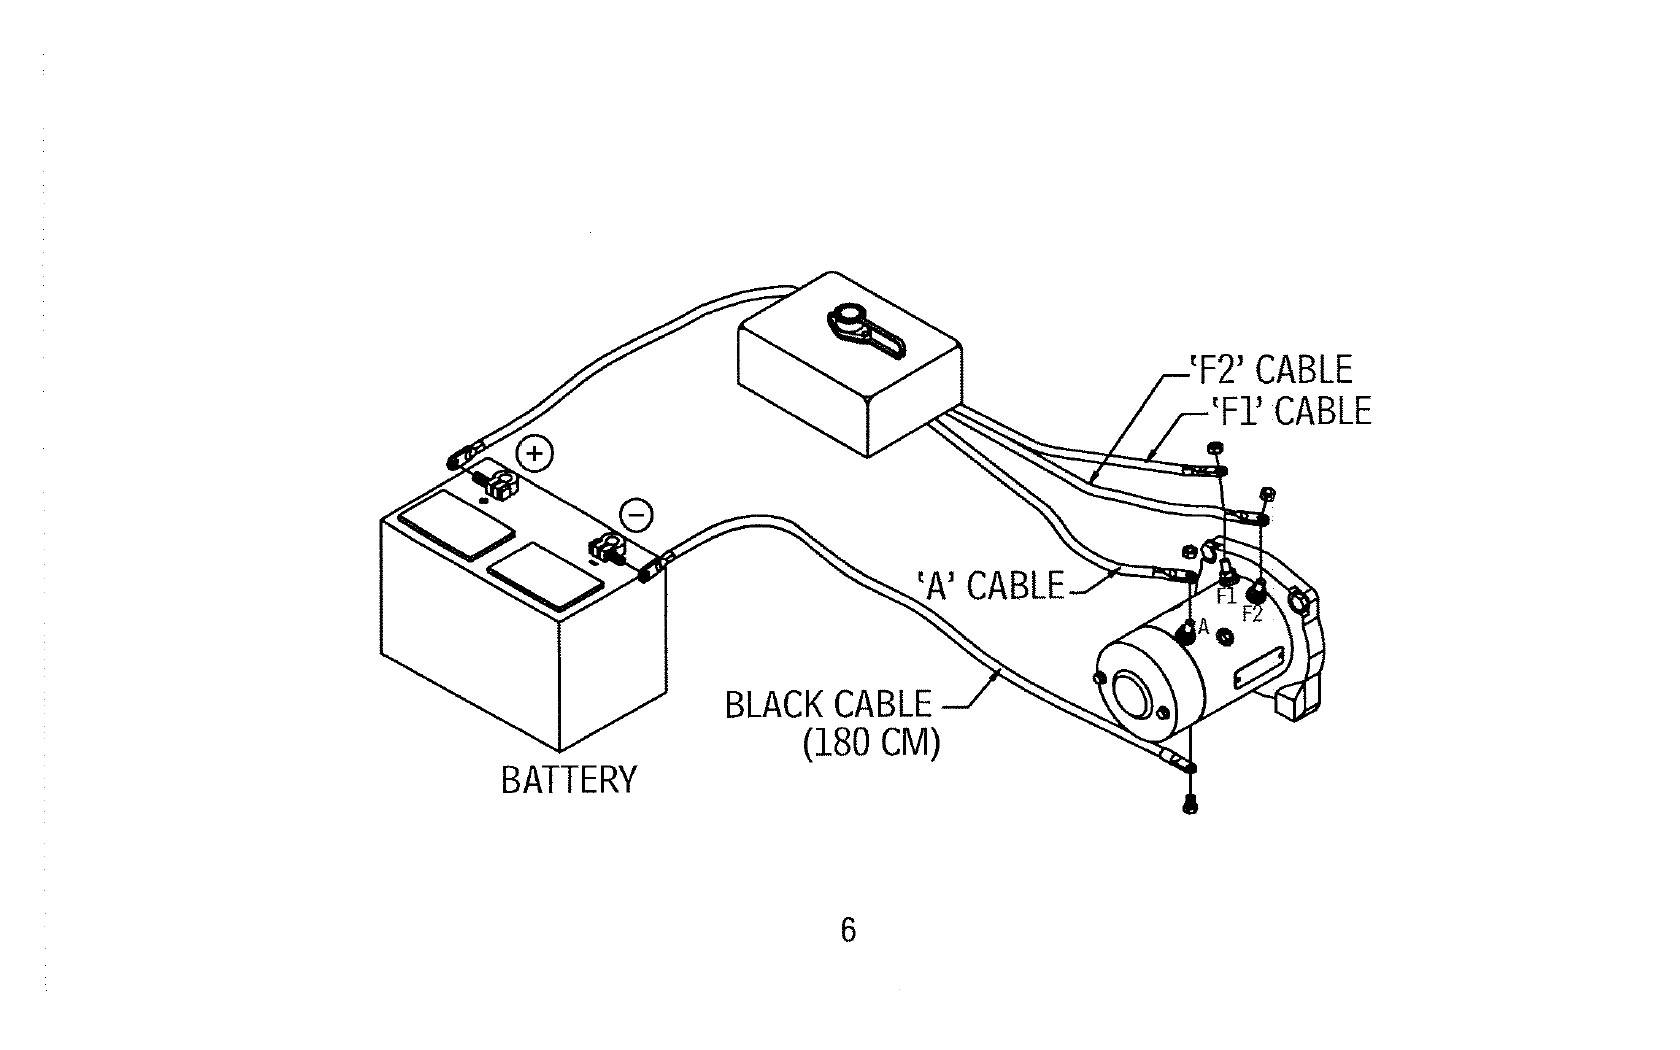 warn_cables warn winch m8000 wiring diagram warn winch switch diagram \u2022 free warn 9000 lb winch wiring diagram at nearapp.co